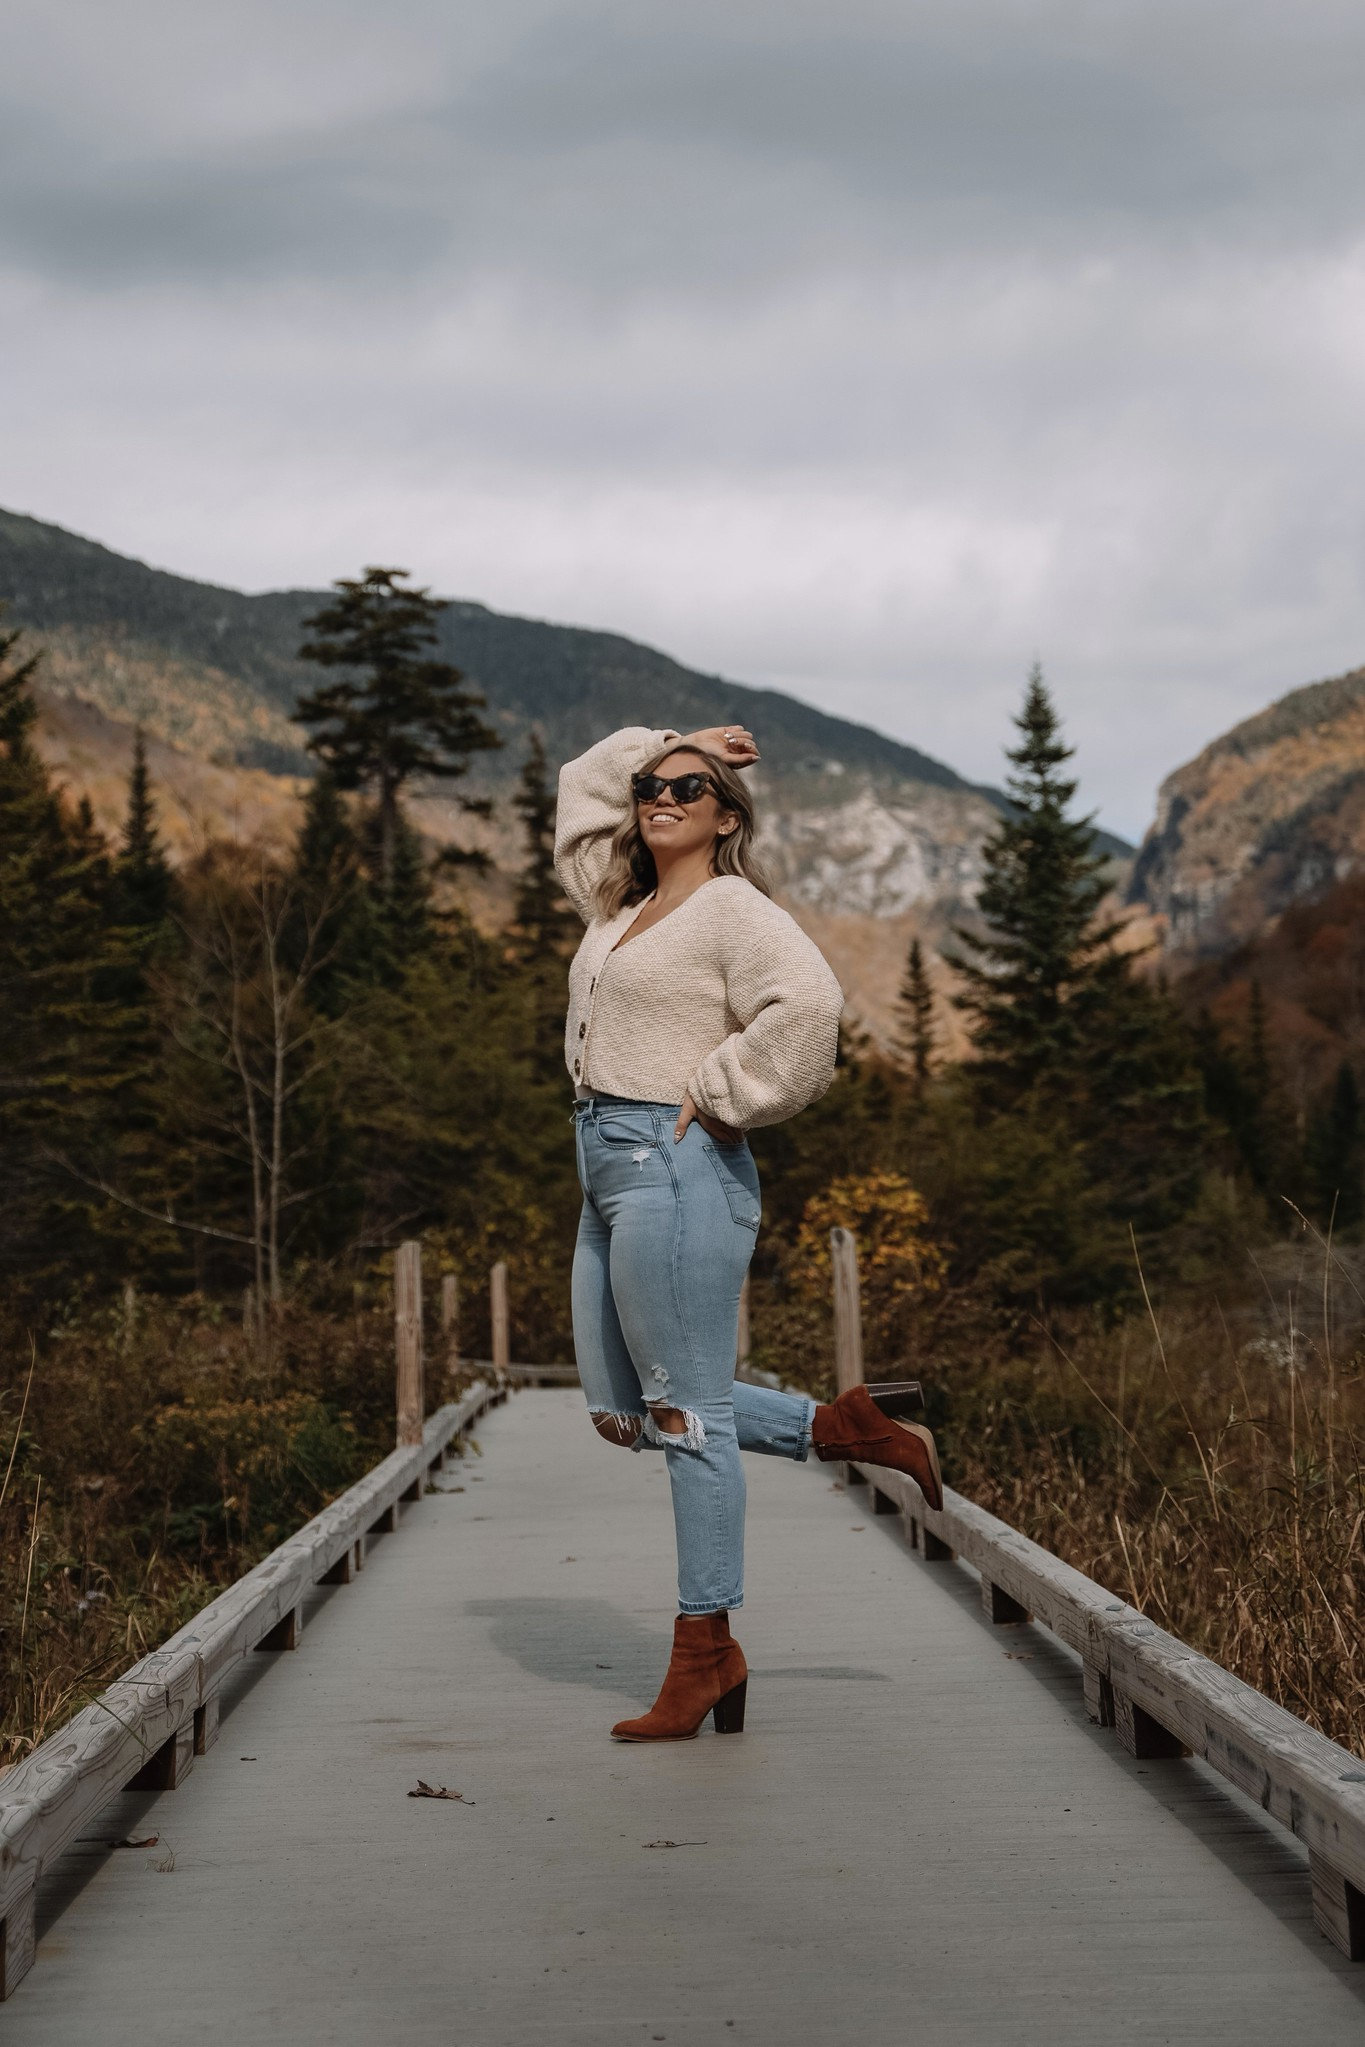 Chunky Cardigan & American Eagle Mom Jeans | Stowe Mountain Resort | What to Wear in Vermont in the Fall | Vermont Packing List for Fall | What to Wear in Vermont in October | What to Wear on a Fall Vacation | Fall Outfits